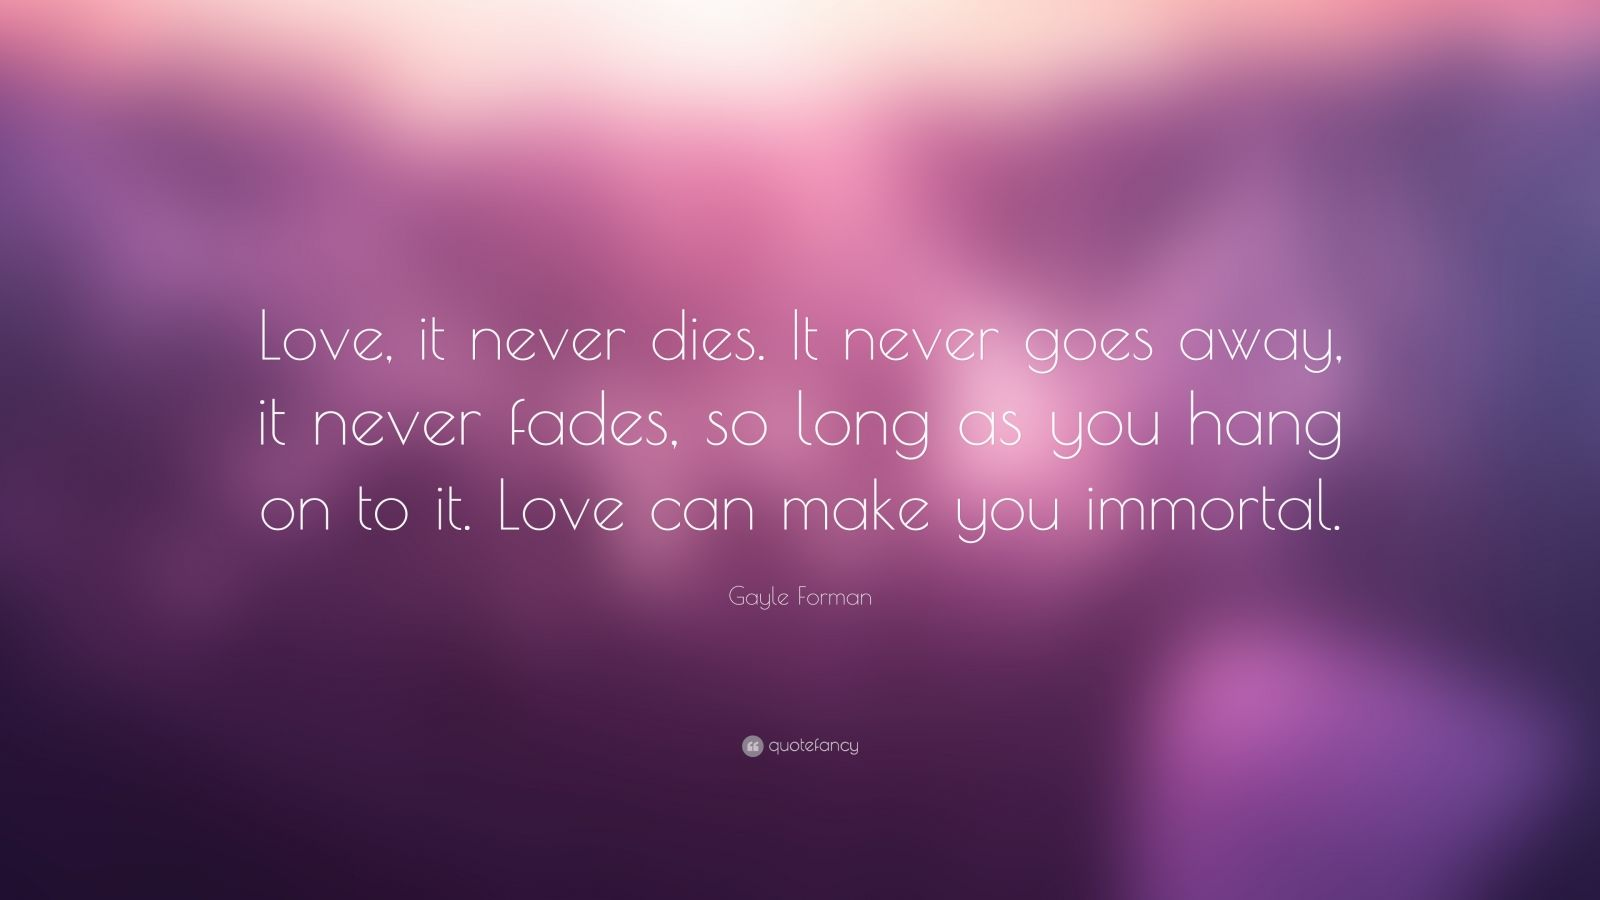 Love Never Dies Quotes Wallpaper : Gayle Forman Quote: ?Love, it never dies. It never goes away, it never fades, so long as you ...